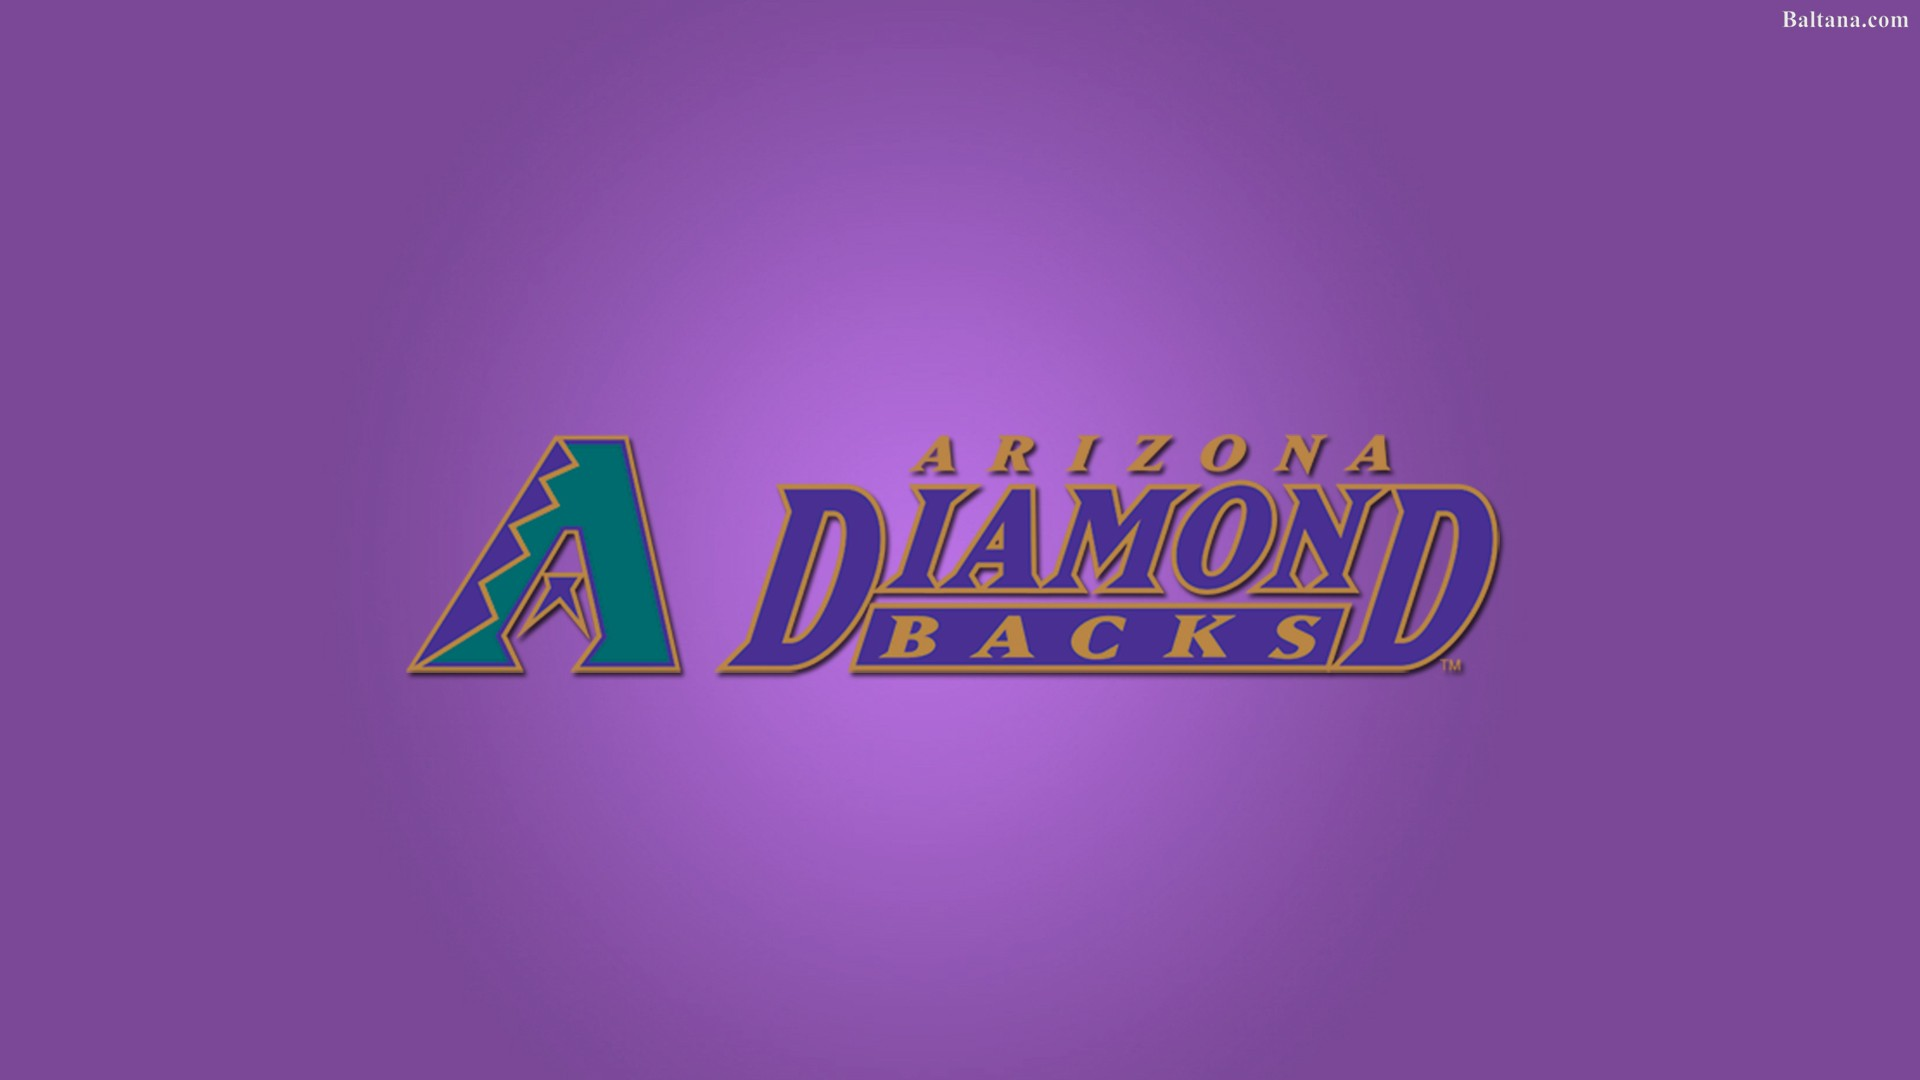 1920x1080 - Arizona Diamondbacks Wallpapers 15